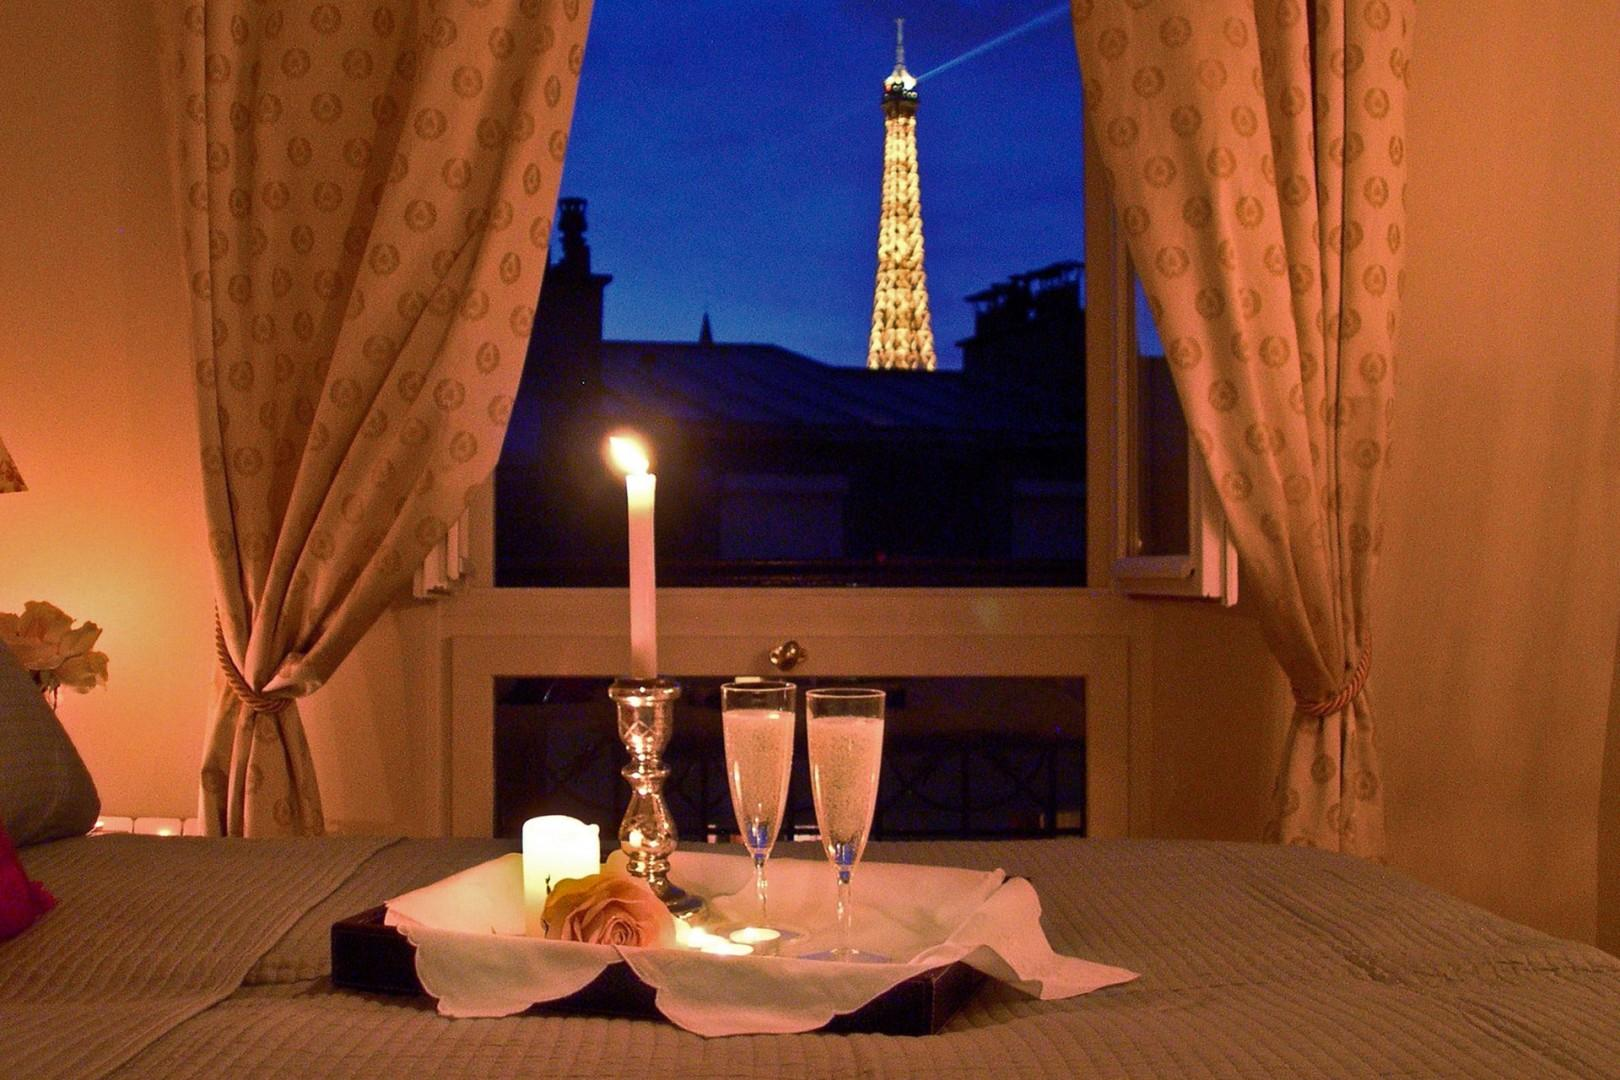 Enjoy stunning evening view of the Eiffel Tower from bedroom 1!